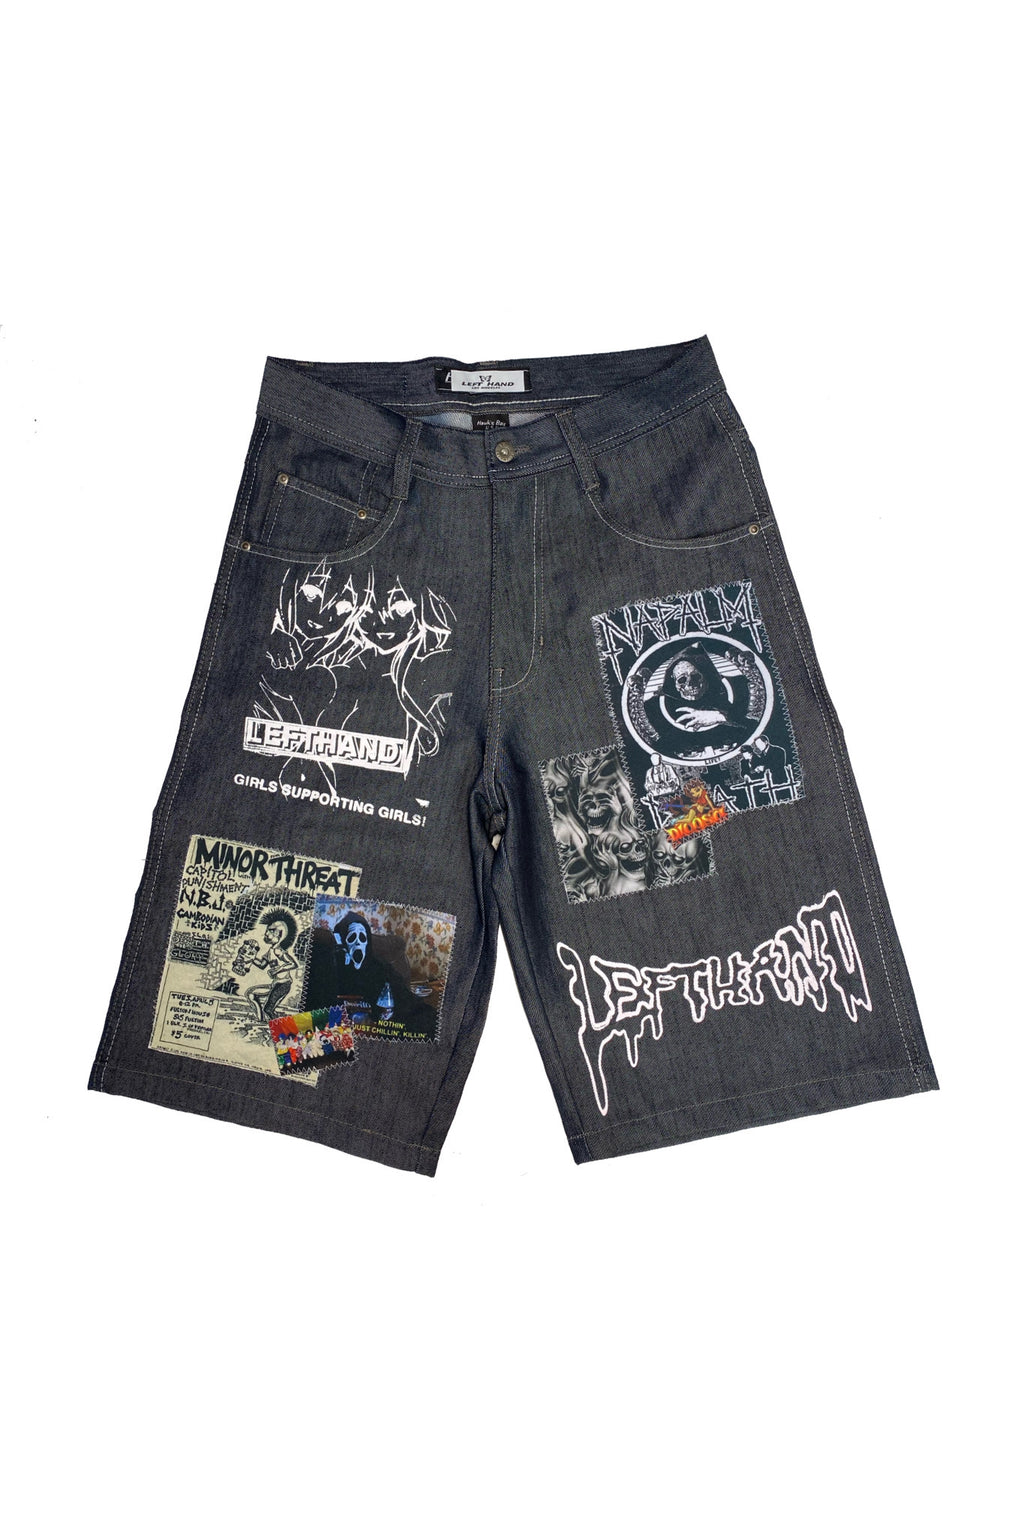 Minor threat shorts